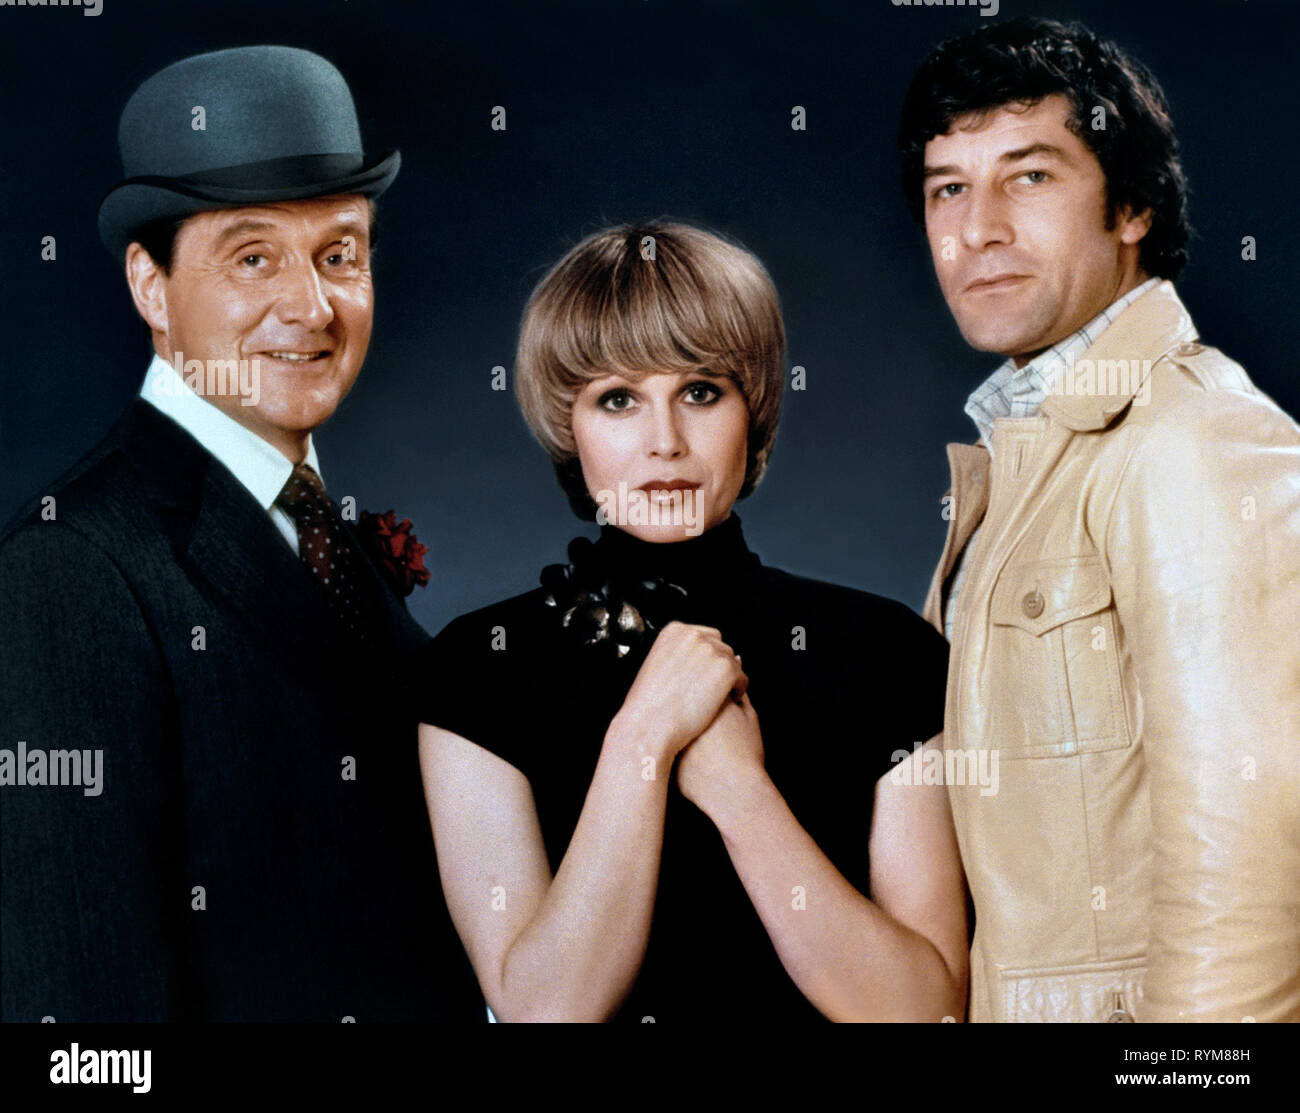 MACNEE,LUMLEY,HUNT, THE NEW AVENGERS, 1976 - Stock Image